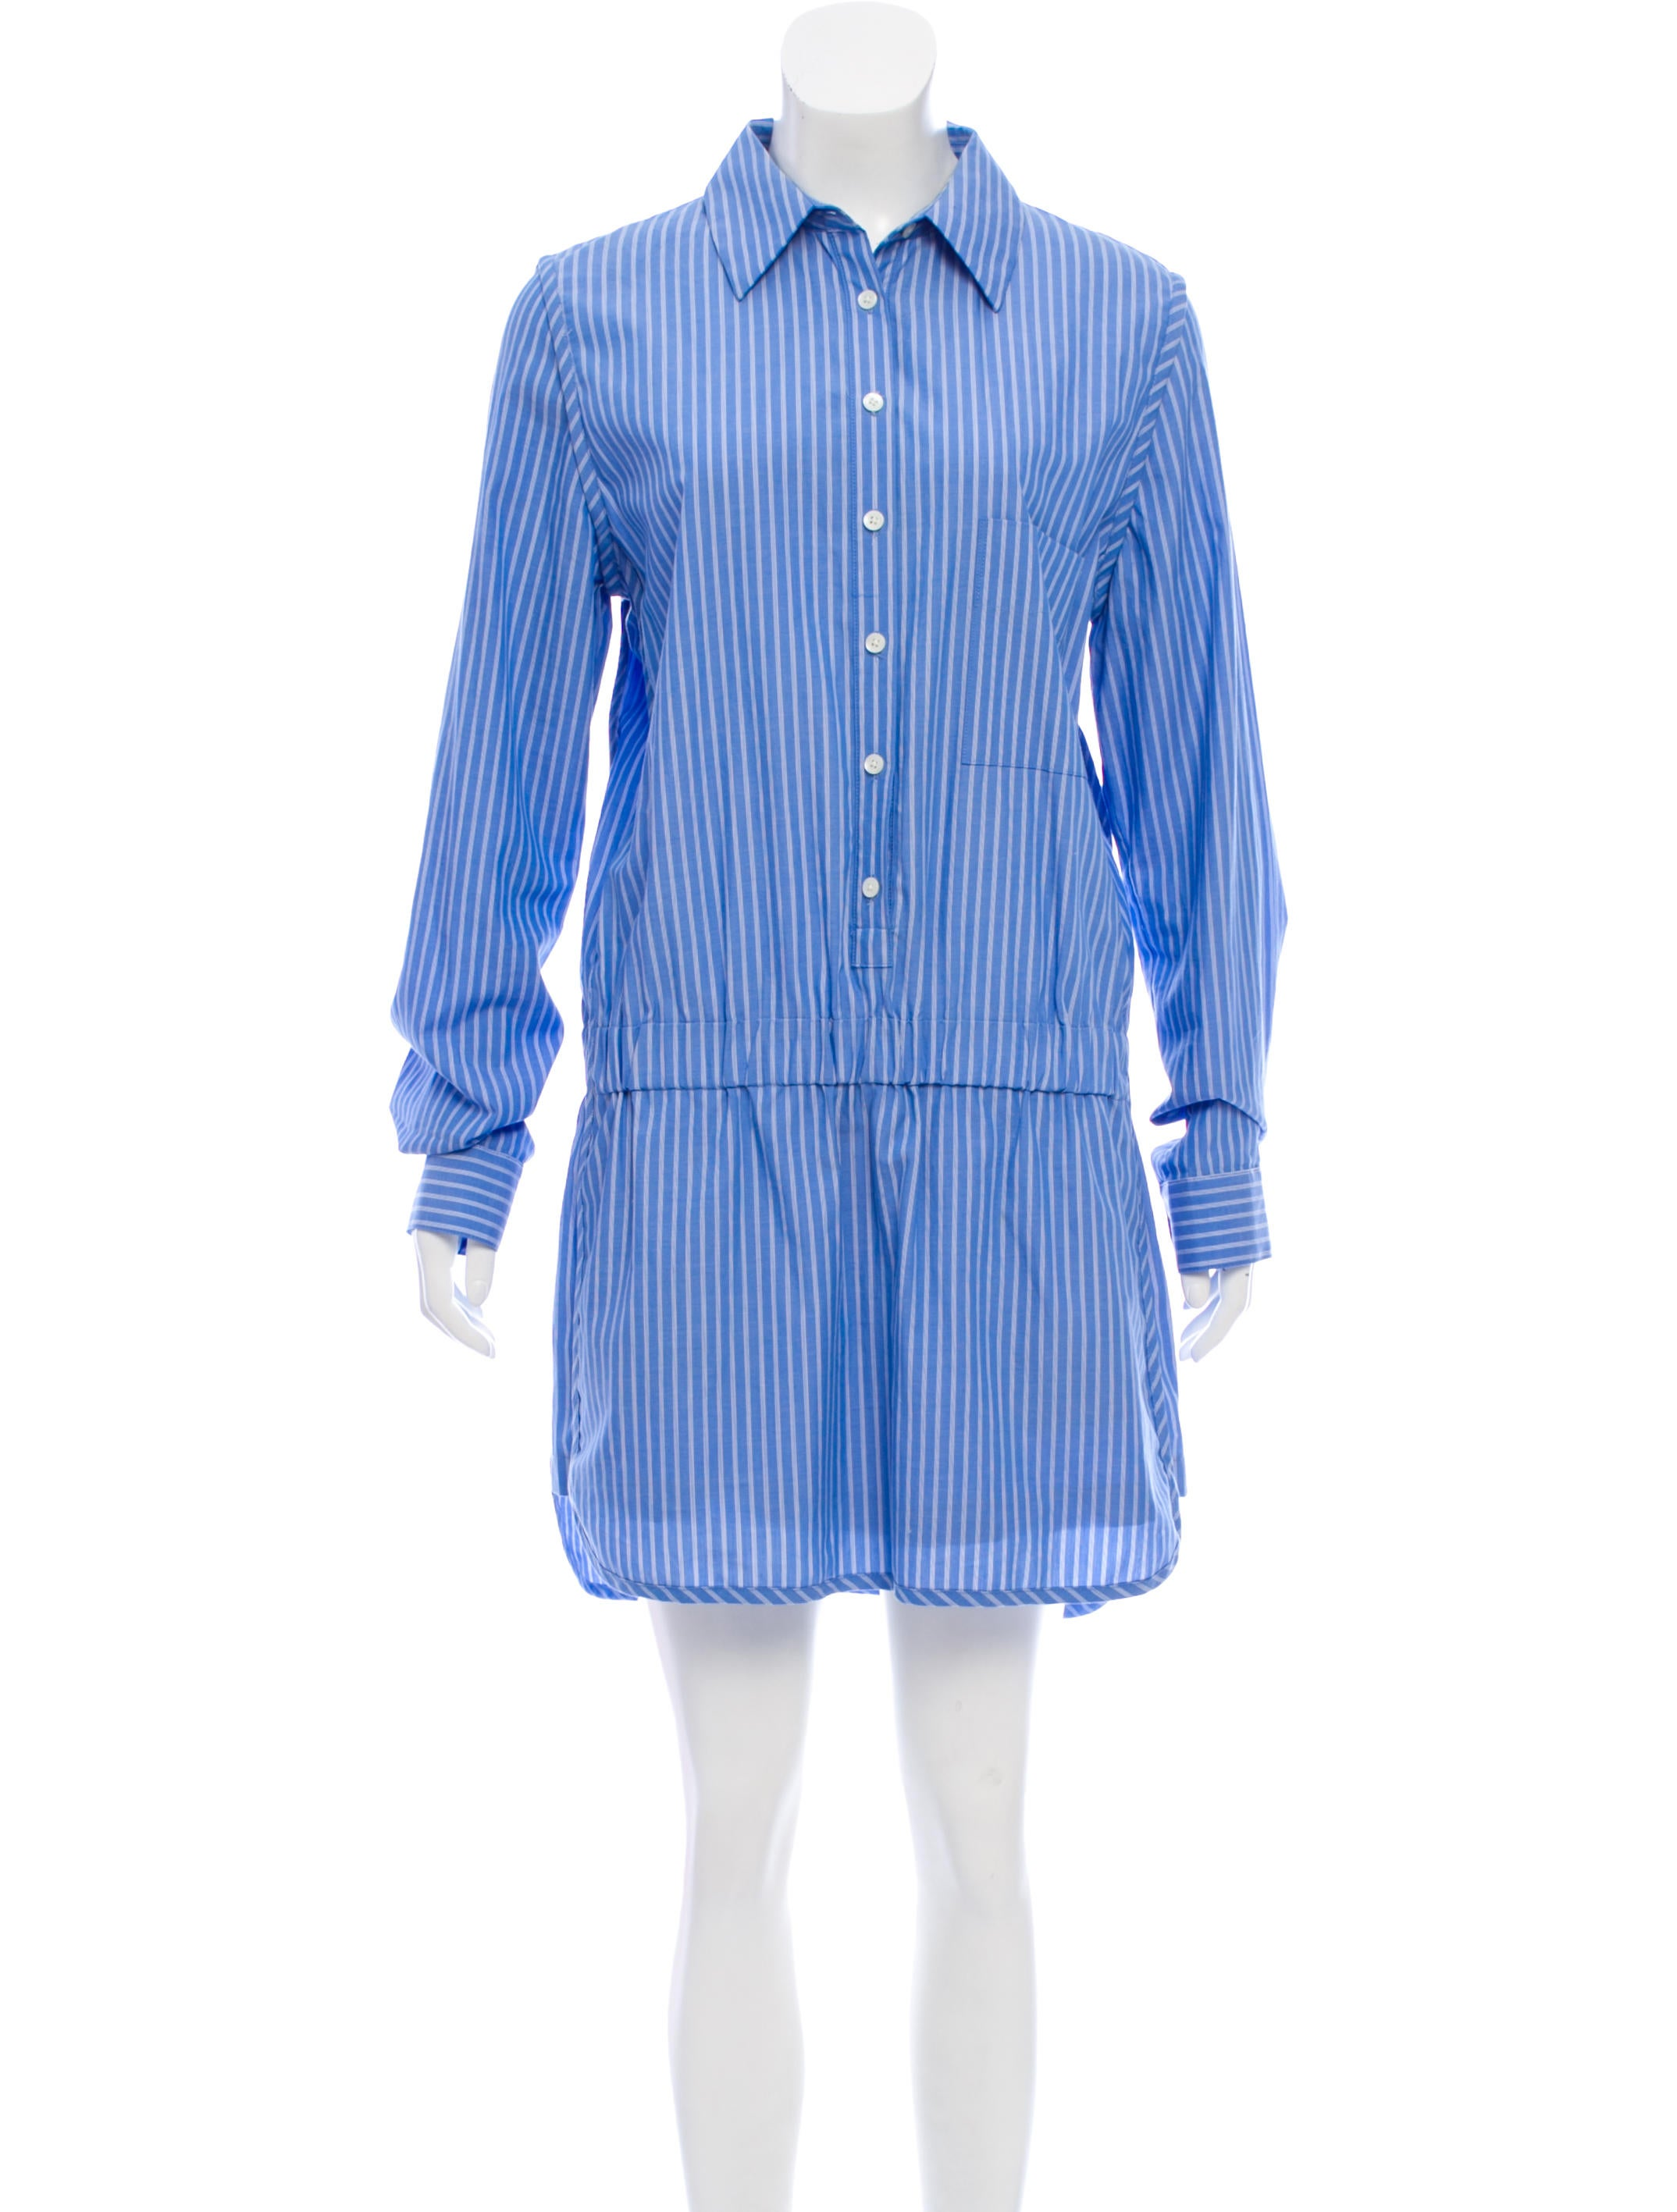 0d8a30099df8 Thakoon Addition Striped Long Sleeve Romper - Clothing - WTK23759 ...